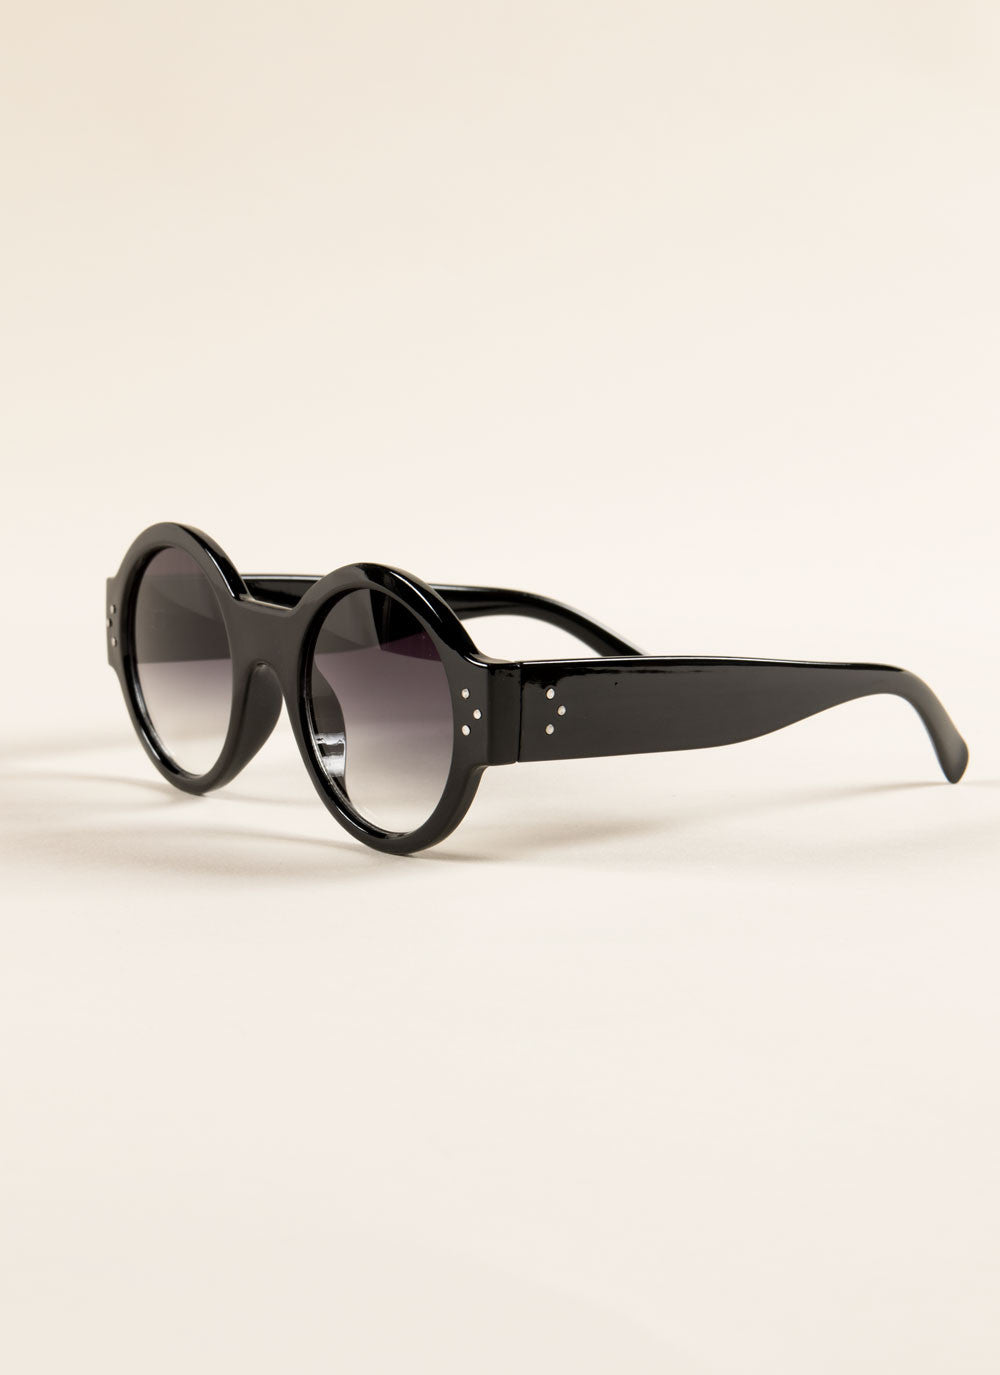 Retro Round Sunglasses , Accessories - Fashion Trend LA, Fashion Trend LA  - 3